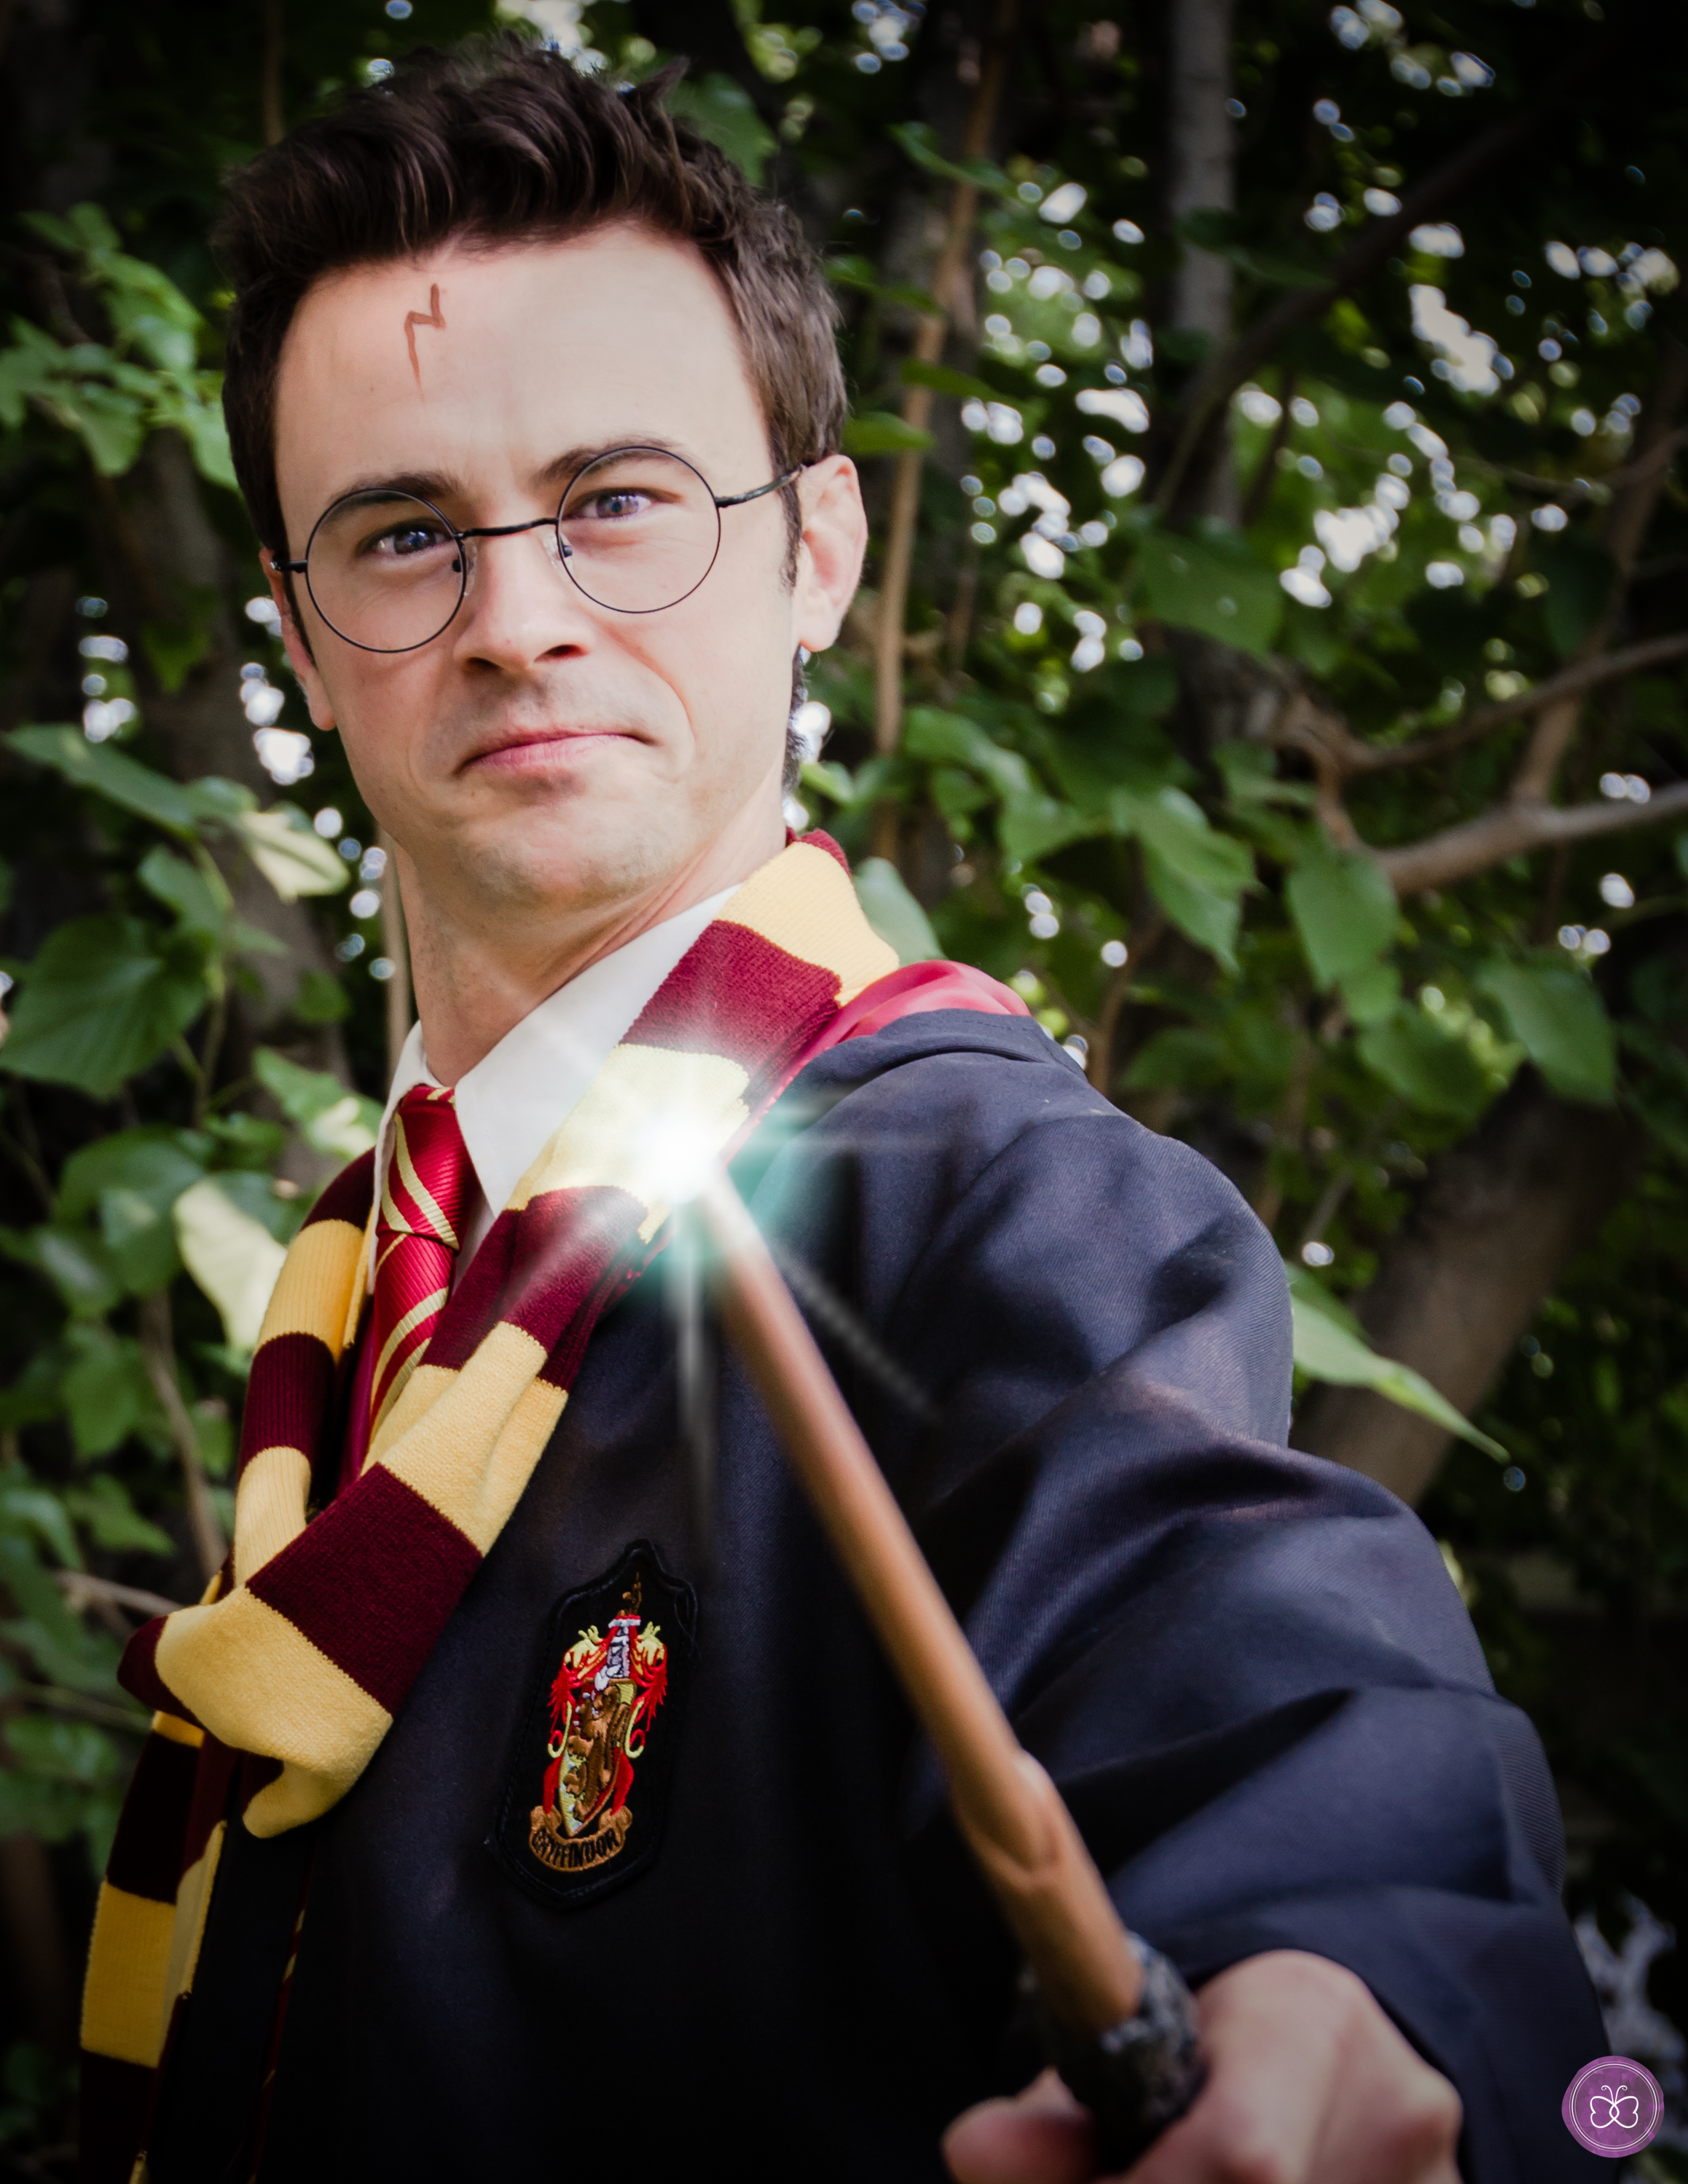 harry potter lookalike party character los angeles